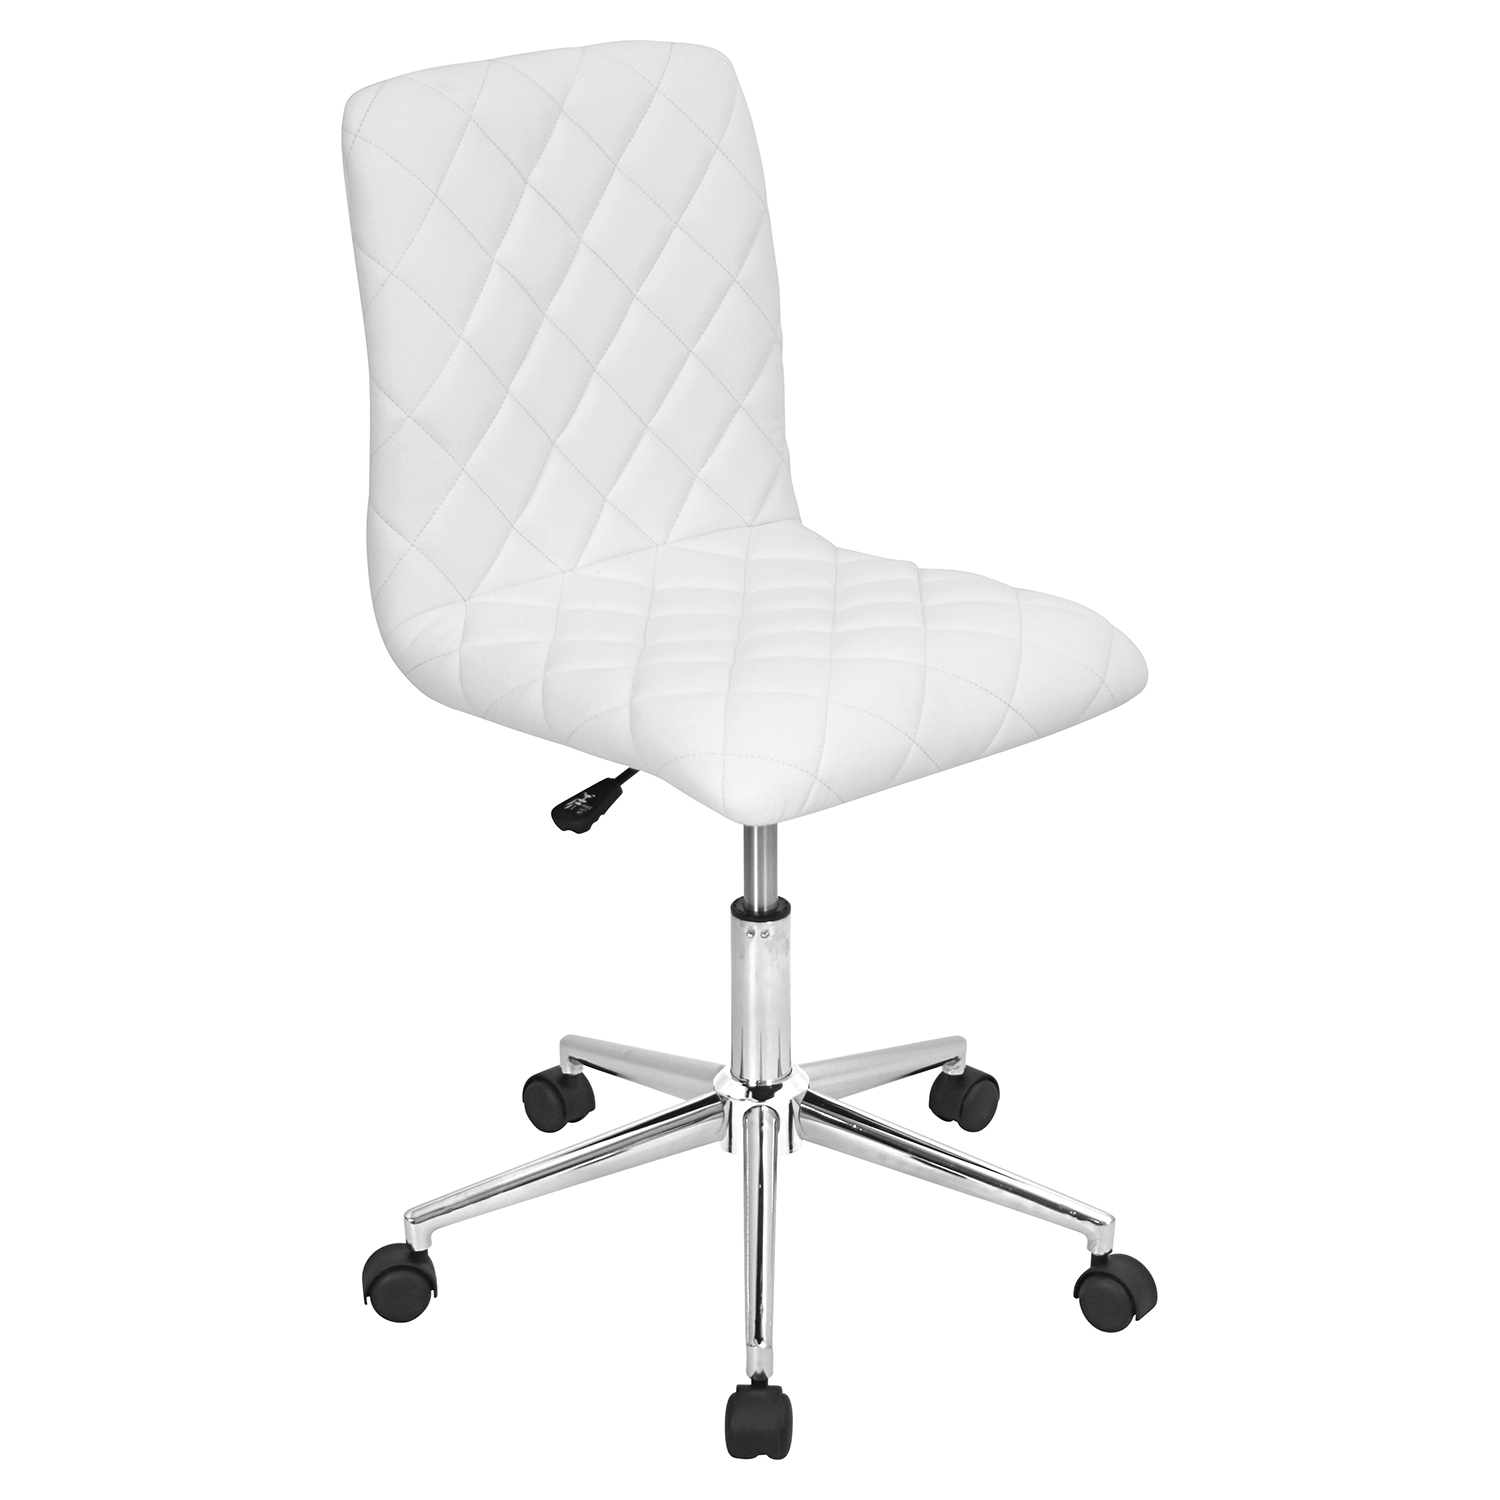 Caviar Height Adjustable Office Chair - Swivel, White - LMS-OC-TW-CAV-W